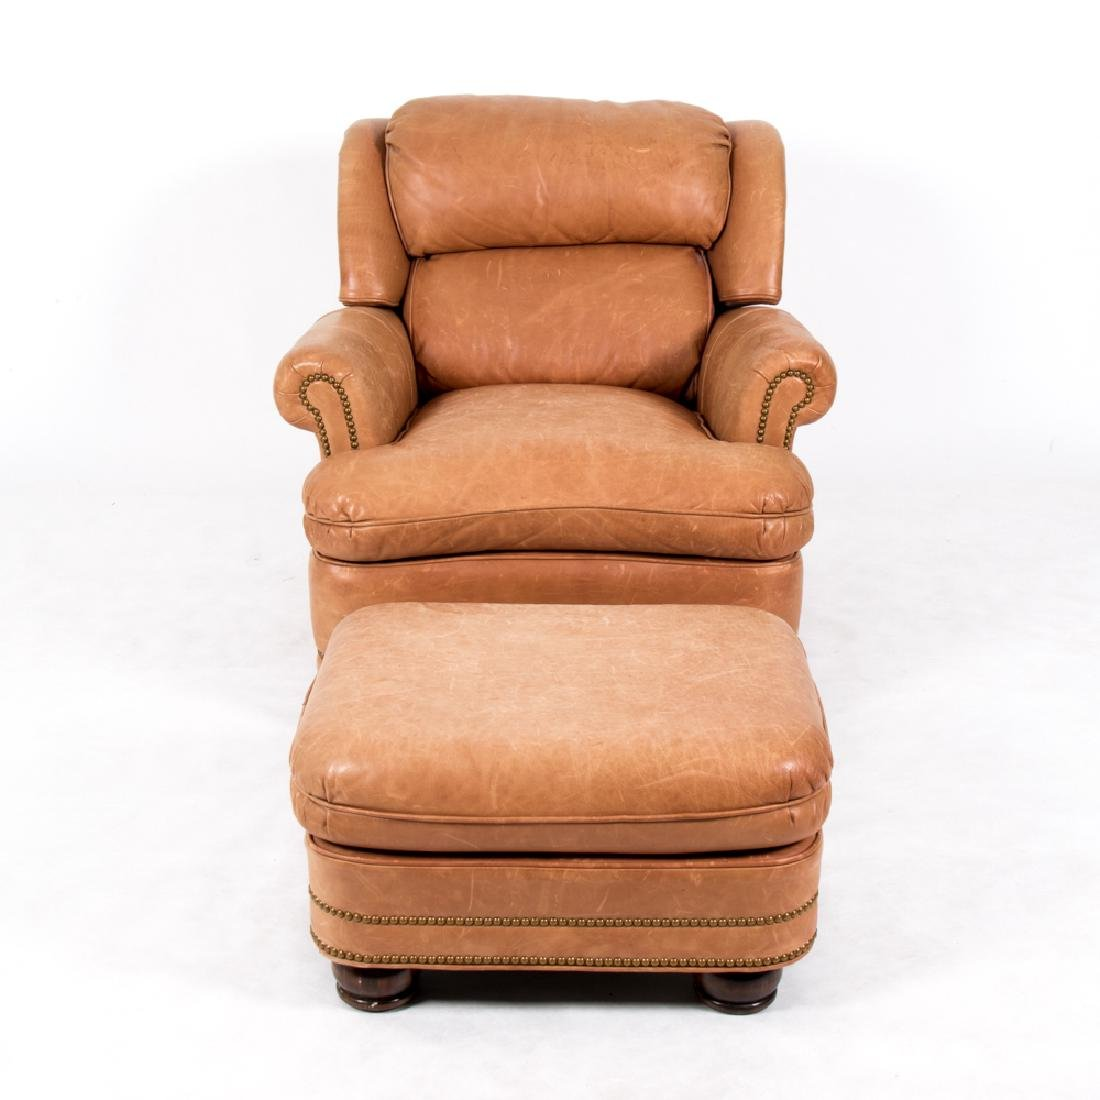 A Hancock and Moore Leather Upholstered Reclining - 2